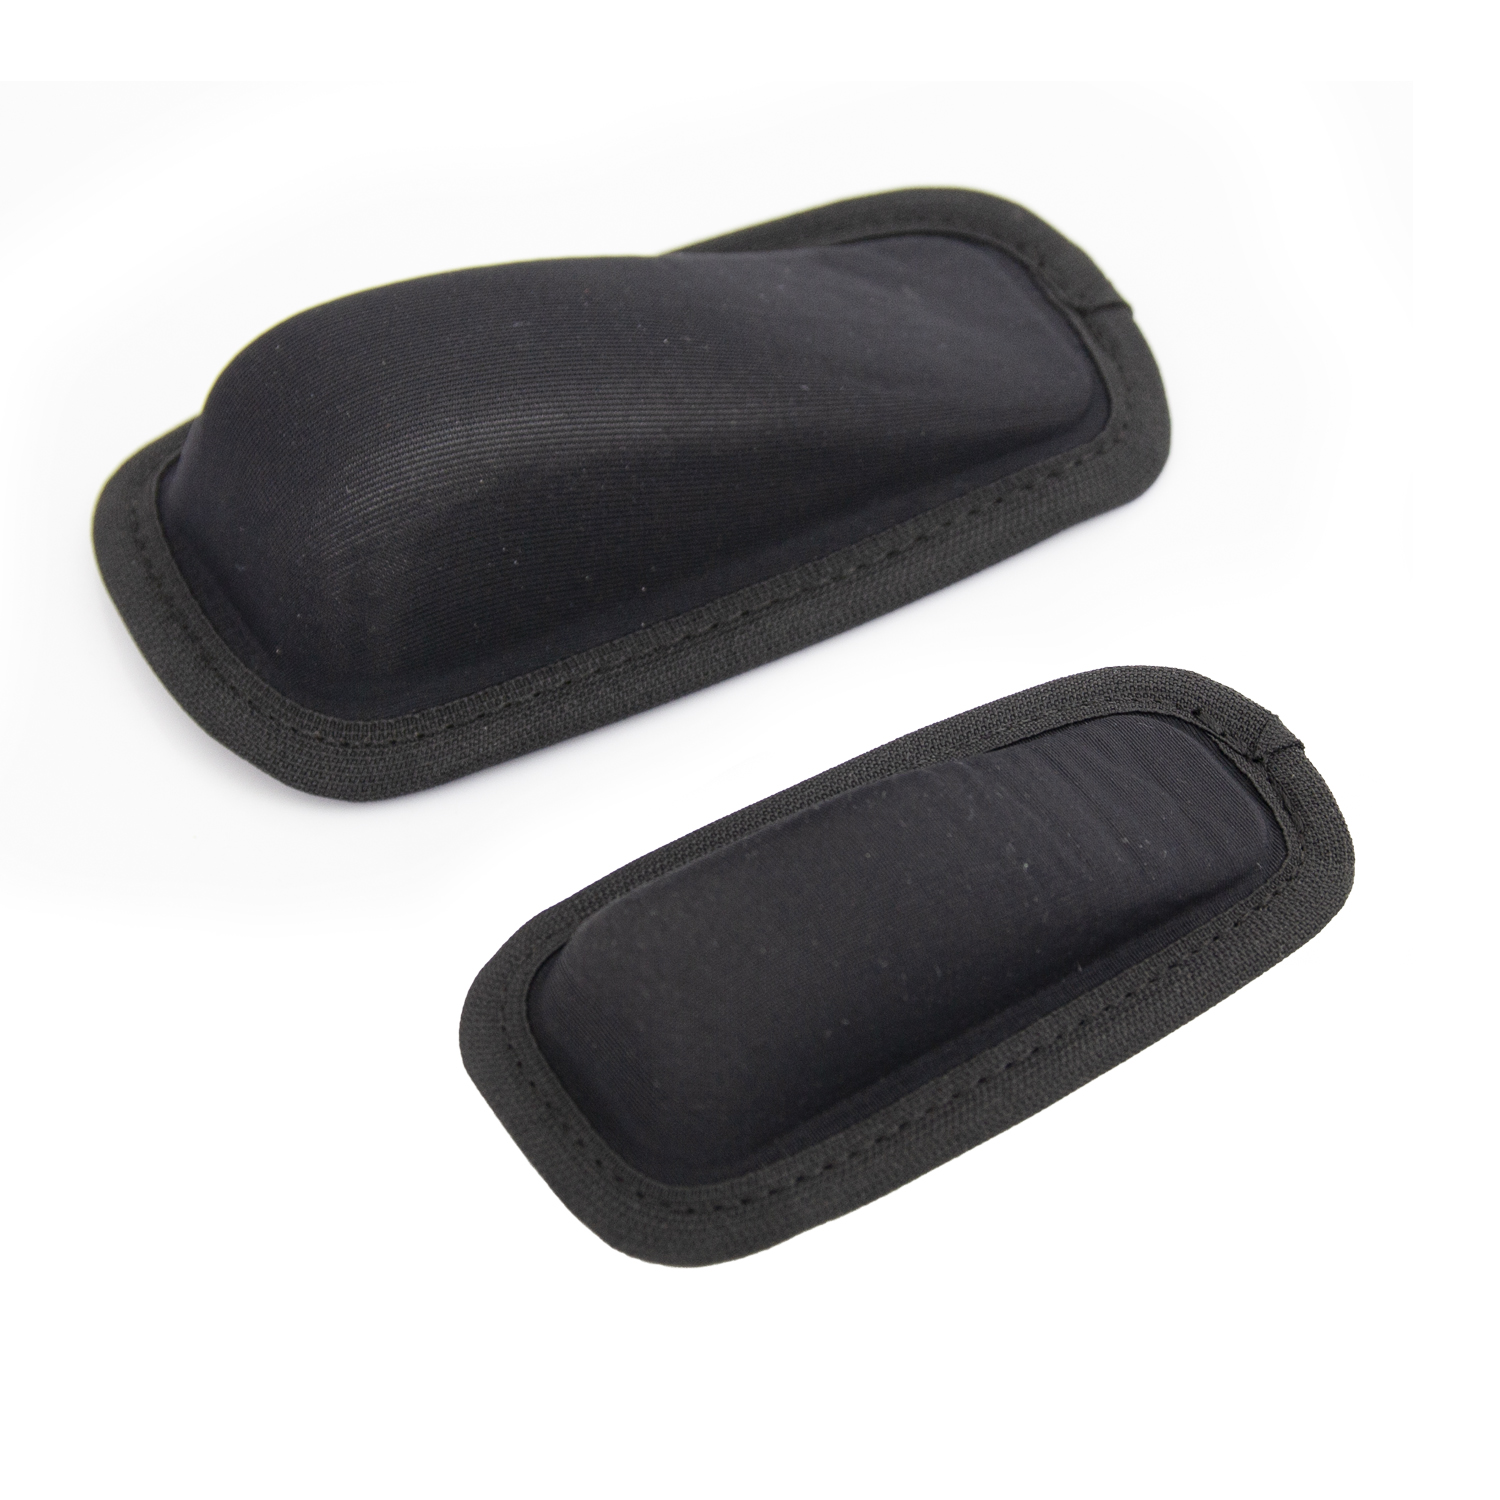 Dynamic relieving anatomic pad (2 pcs) FP-A-3